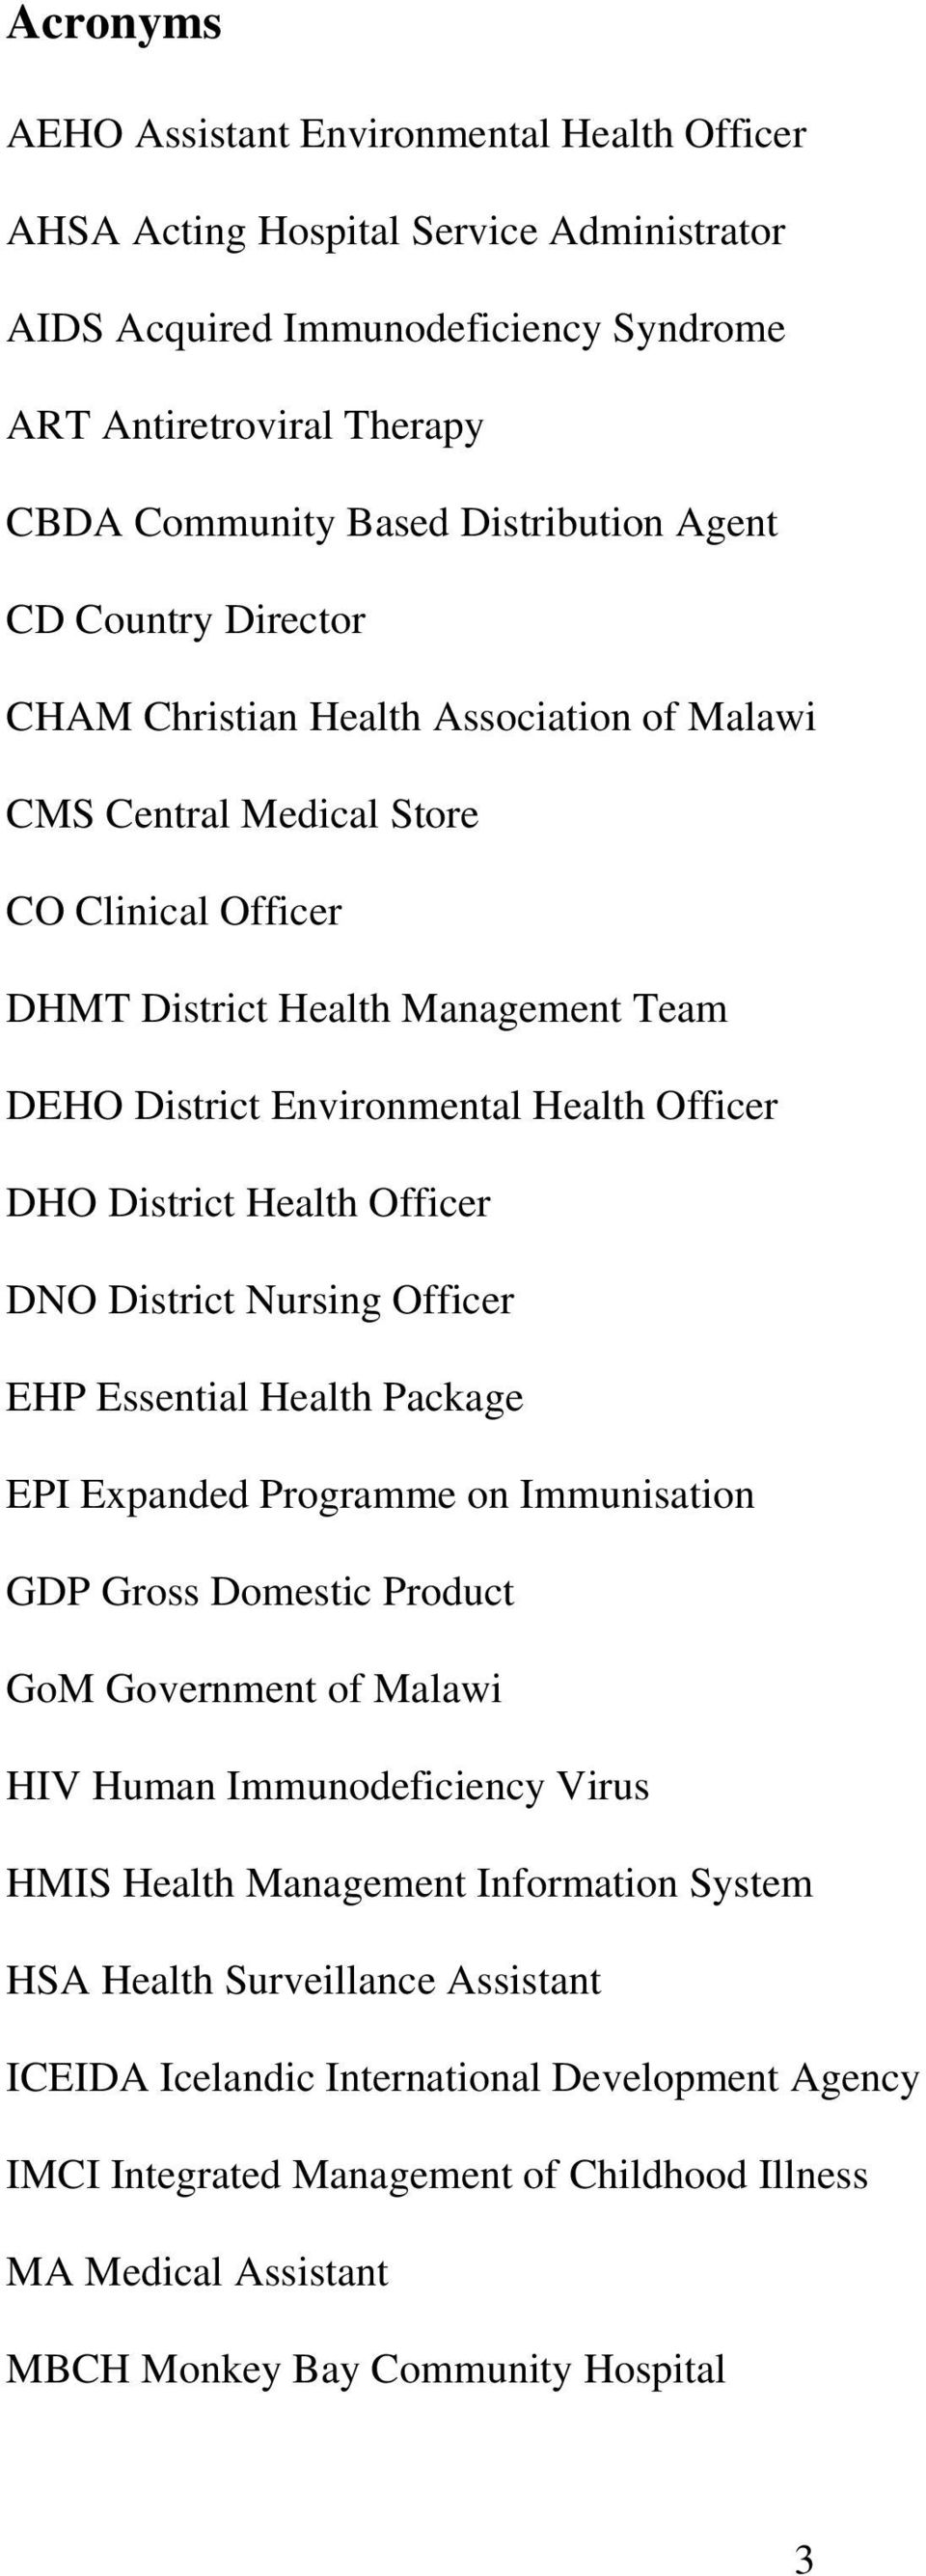 District Health Officer DNO District Nursing Officer EHP Essential Health Package EPI Expanded Programme on Immunisation GDP Gross Domestic Product GoM Government of Malawi HIV Human Immunodeficiency